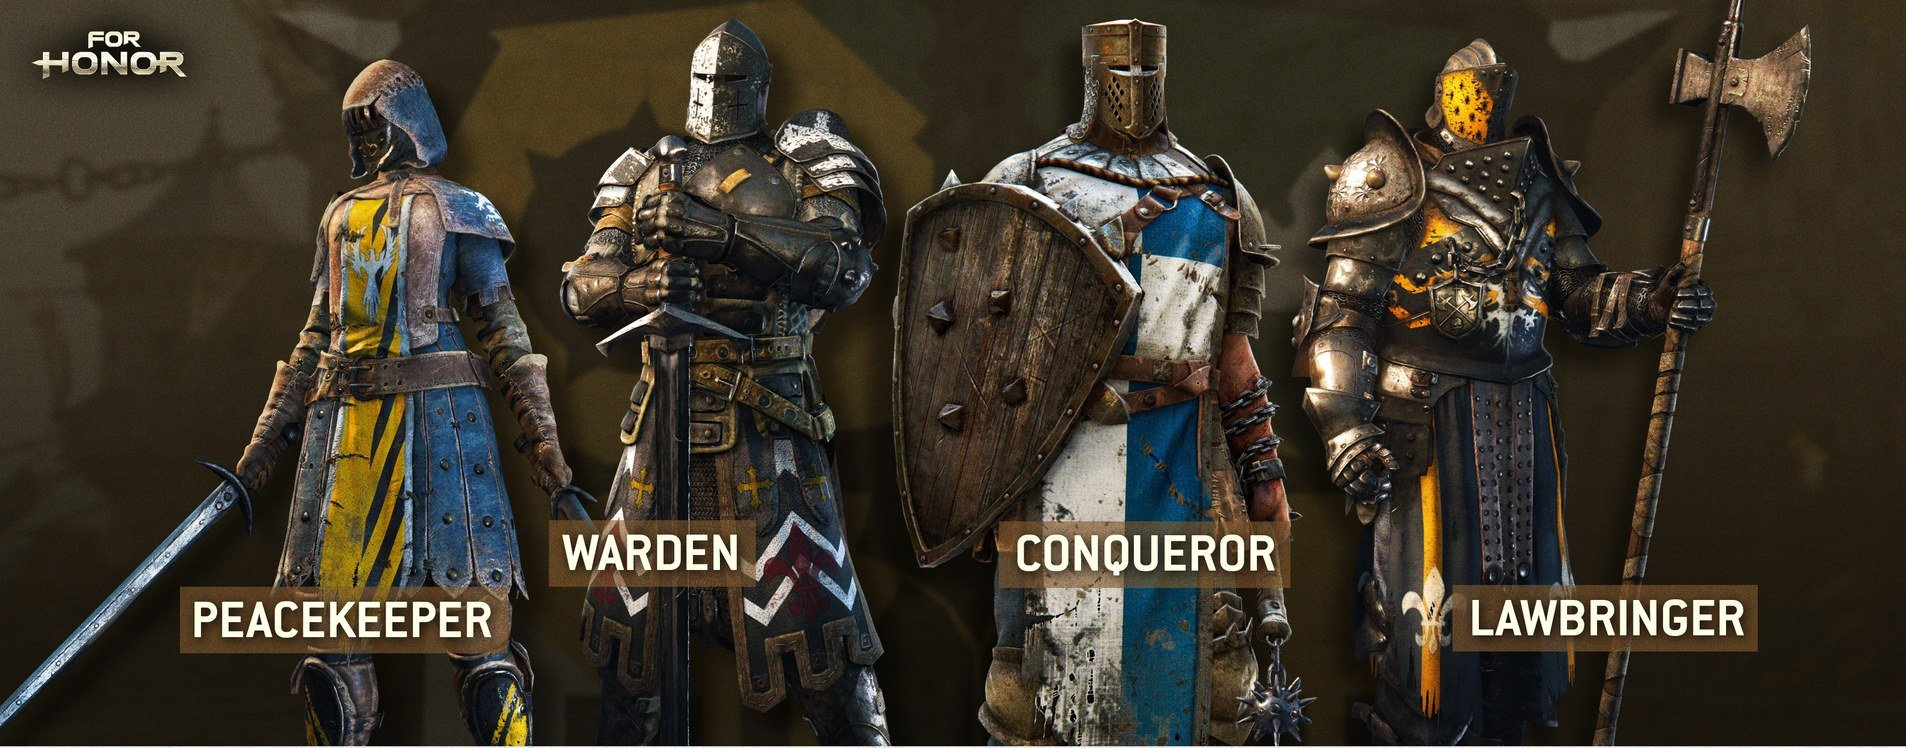 For Honor classes Knights